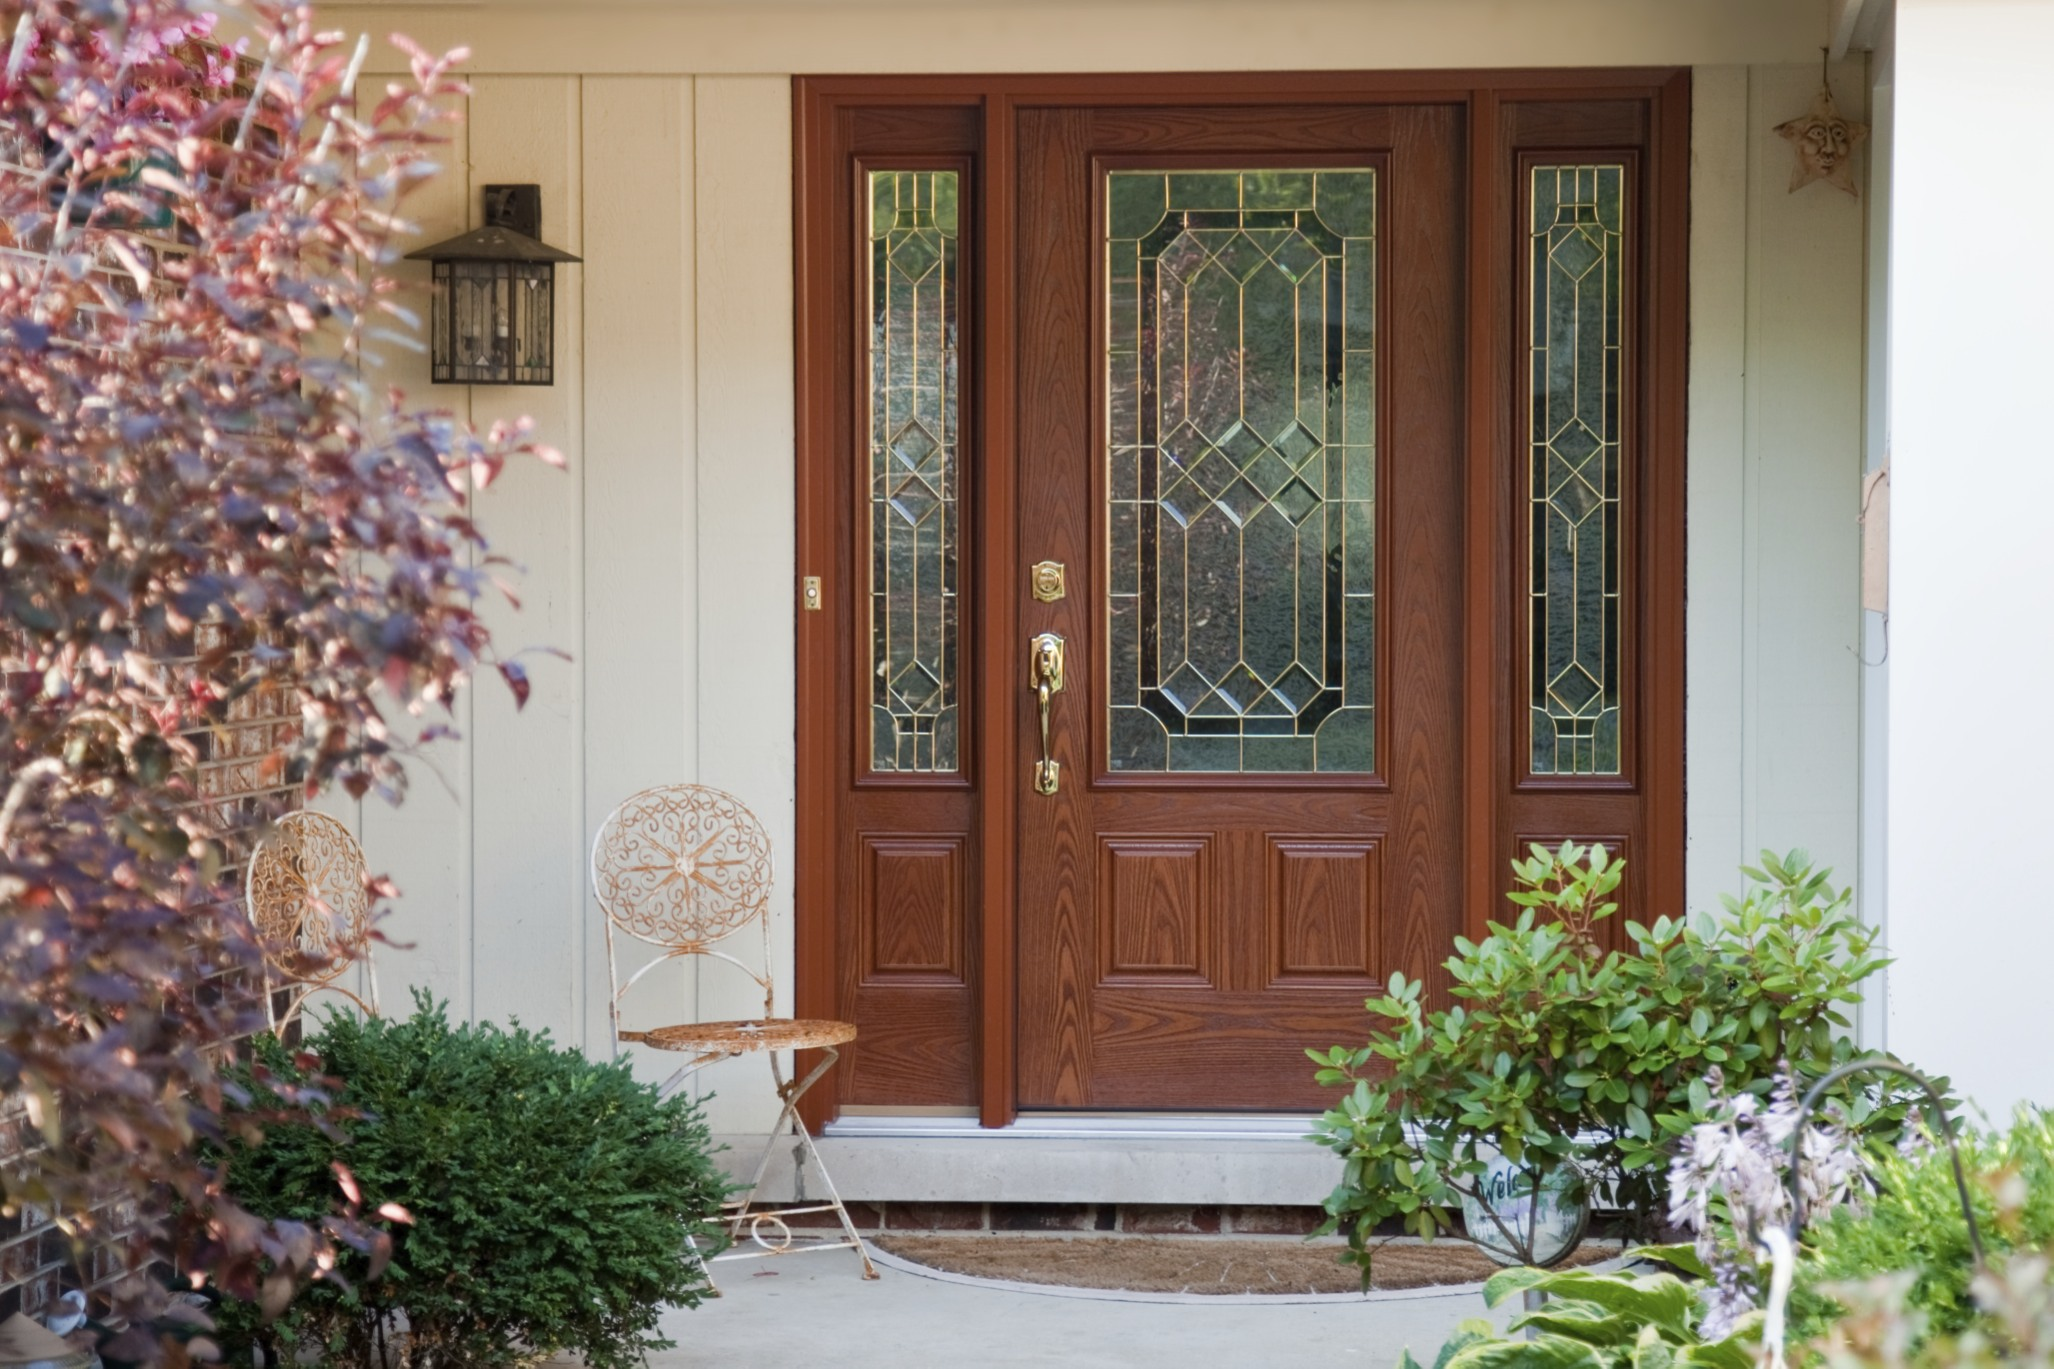 Doors   Kobyco   Replacement Windows, Interior And Exterior Doors, Closet  Organizers And More! Serving Rockford IL And Surrounding Areas.